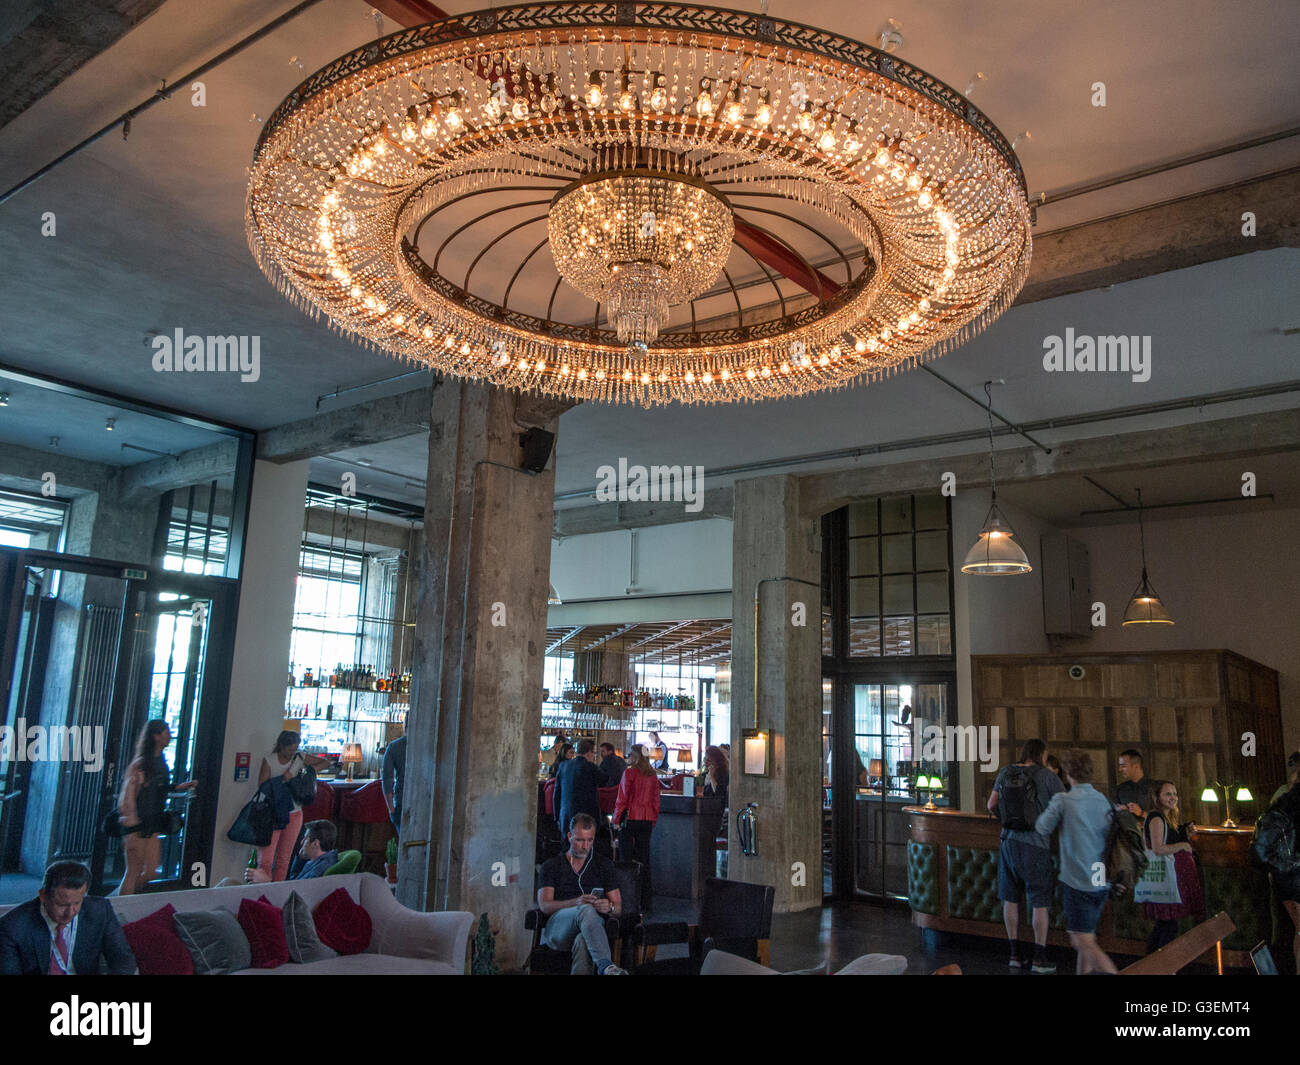 Innere Des Soho House Berlin Stockfoto Bild 105429860 Alamy